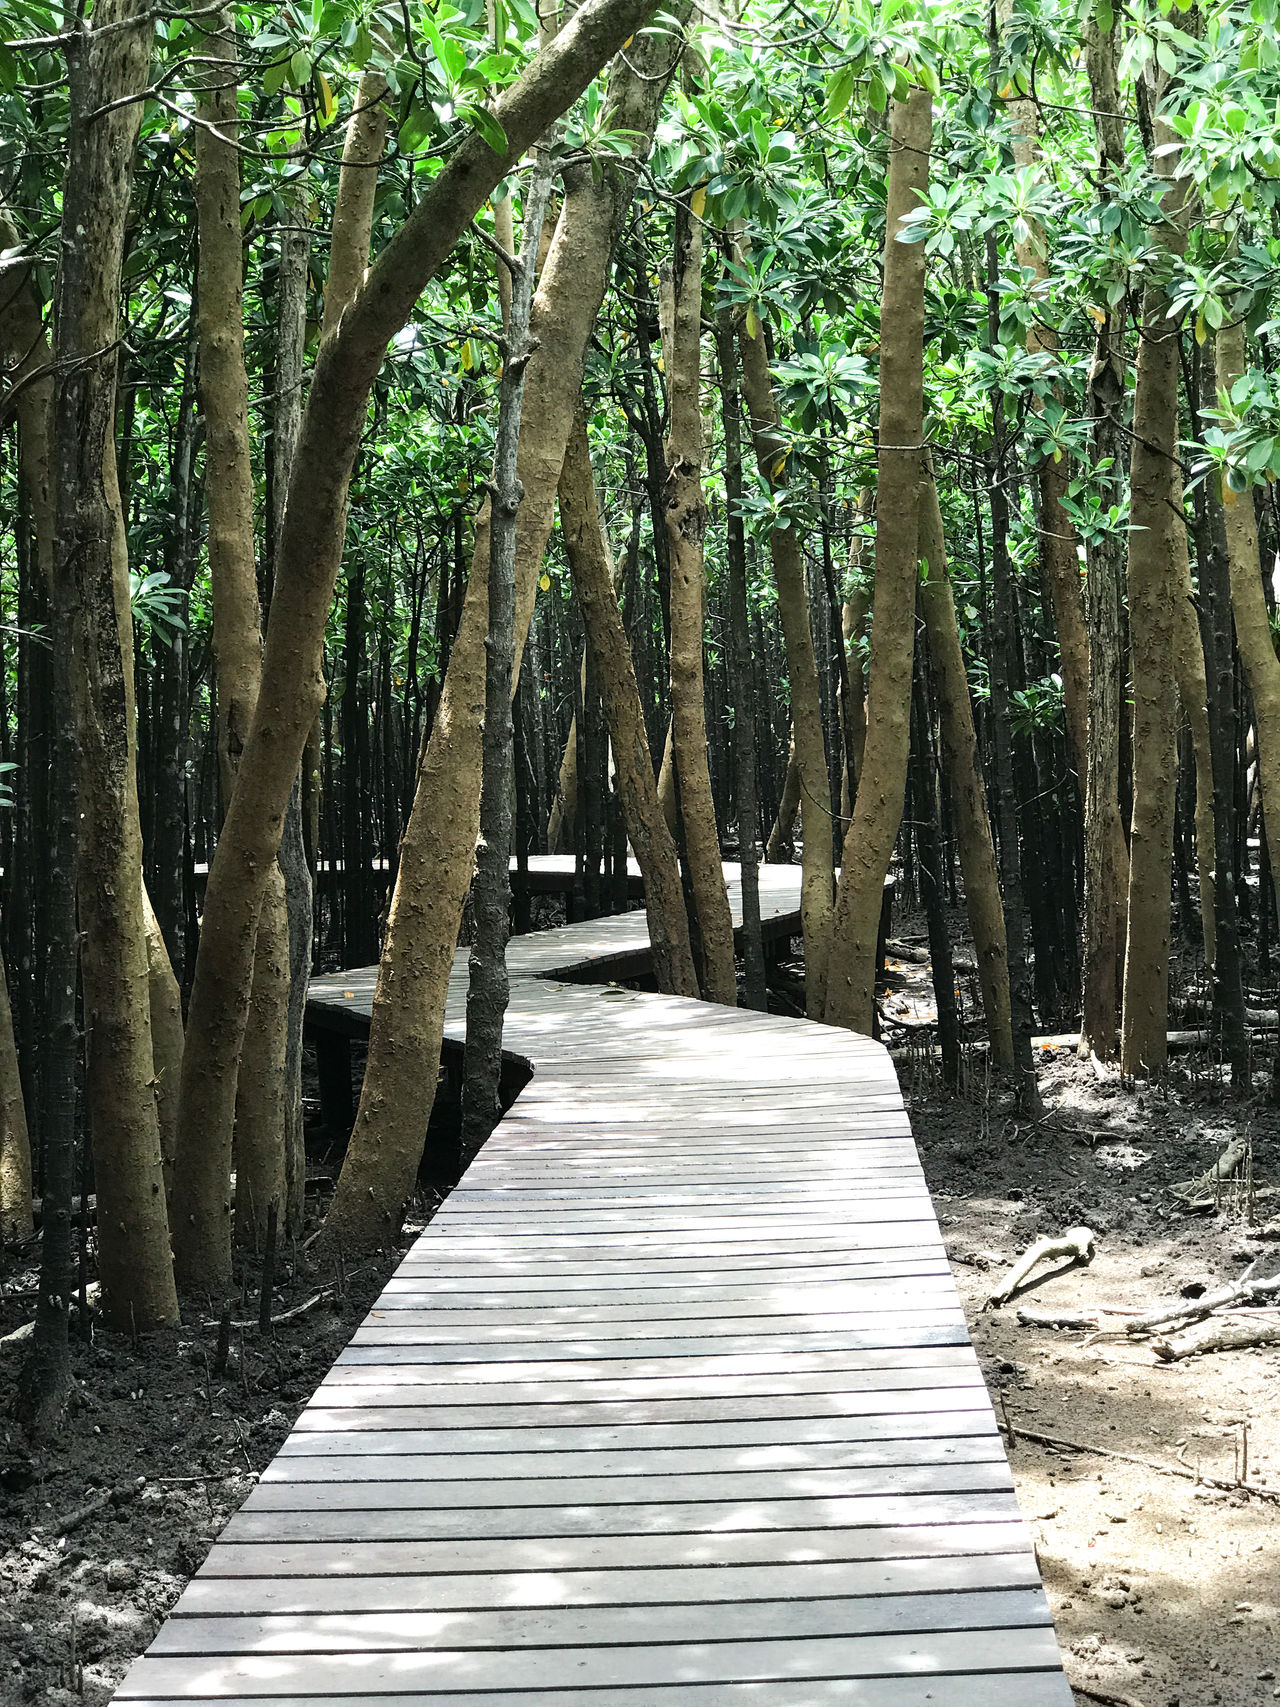 Beauty In Nature Boardwalk Day Forest Freshness Green Color IPhoneography Landscape Mangrove Forest Mangroves Nature No People Outdoors Tranquil Scene Travel Photography Tree Tree Trunk